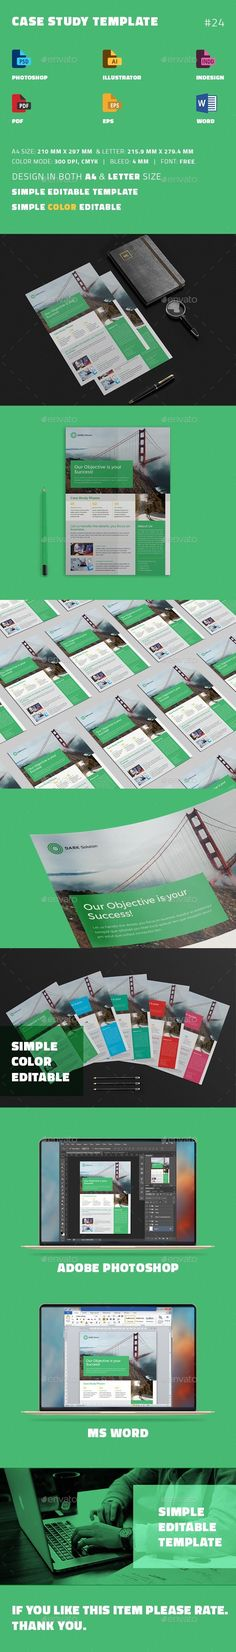 Case Study Template | #Flyer - #Newsletters Print #Templates Download here: https://graphicriver.net/item/case-study-template-flyer/19405218?ref=alena994